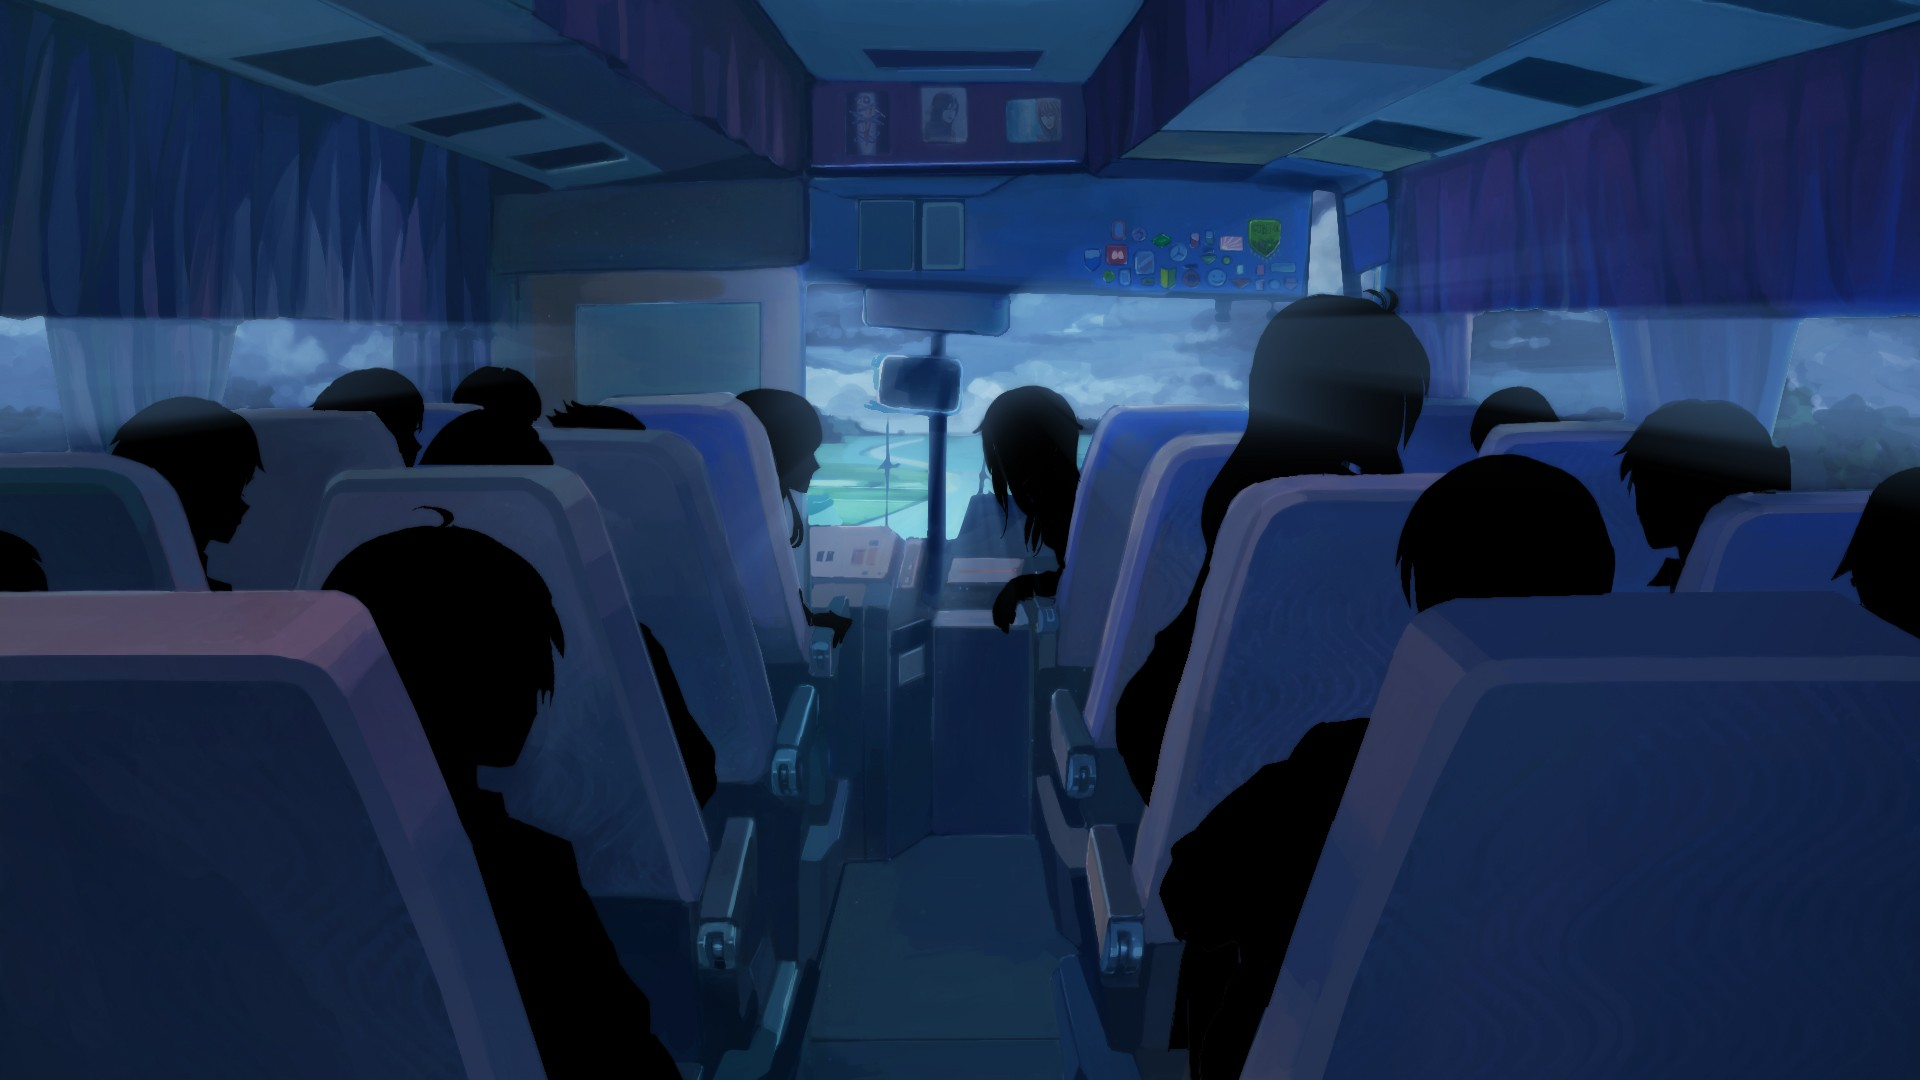 Fantasy Girl Wallpaper Full Hd Shadow Buses Clouds Everlasting Summer Anime People